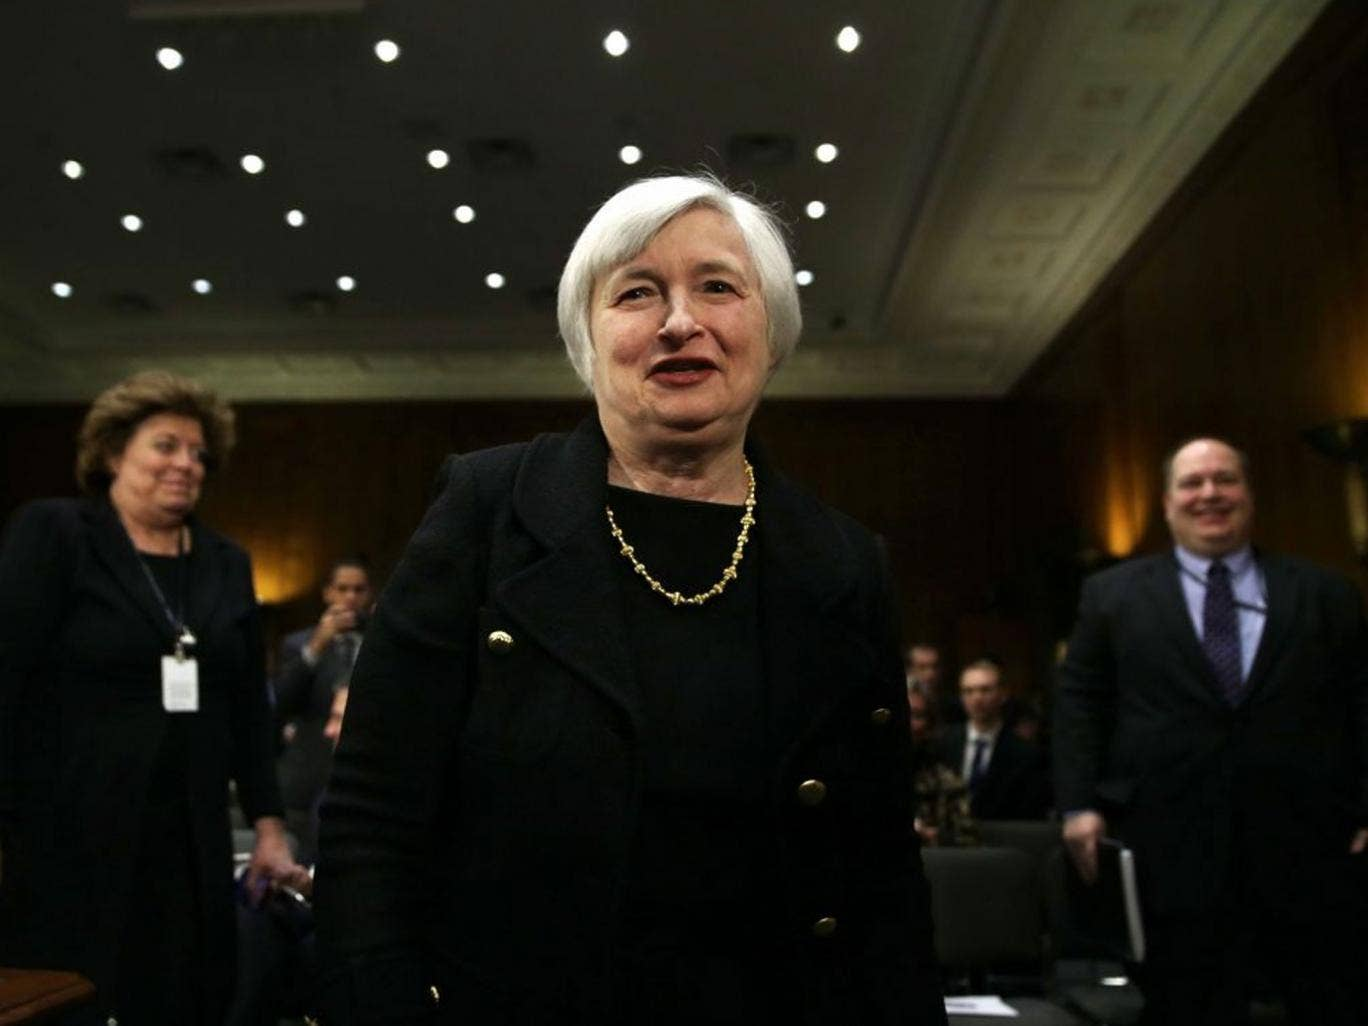 The new chair of the Federal Reserve Janet Yellen